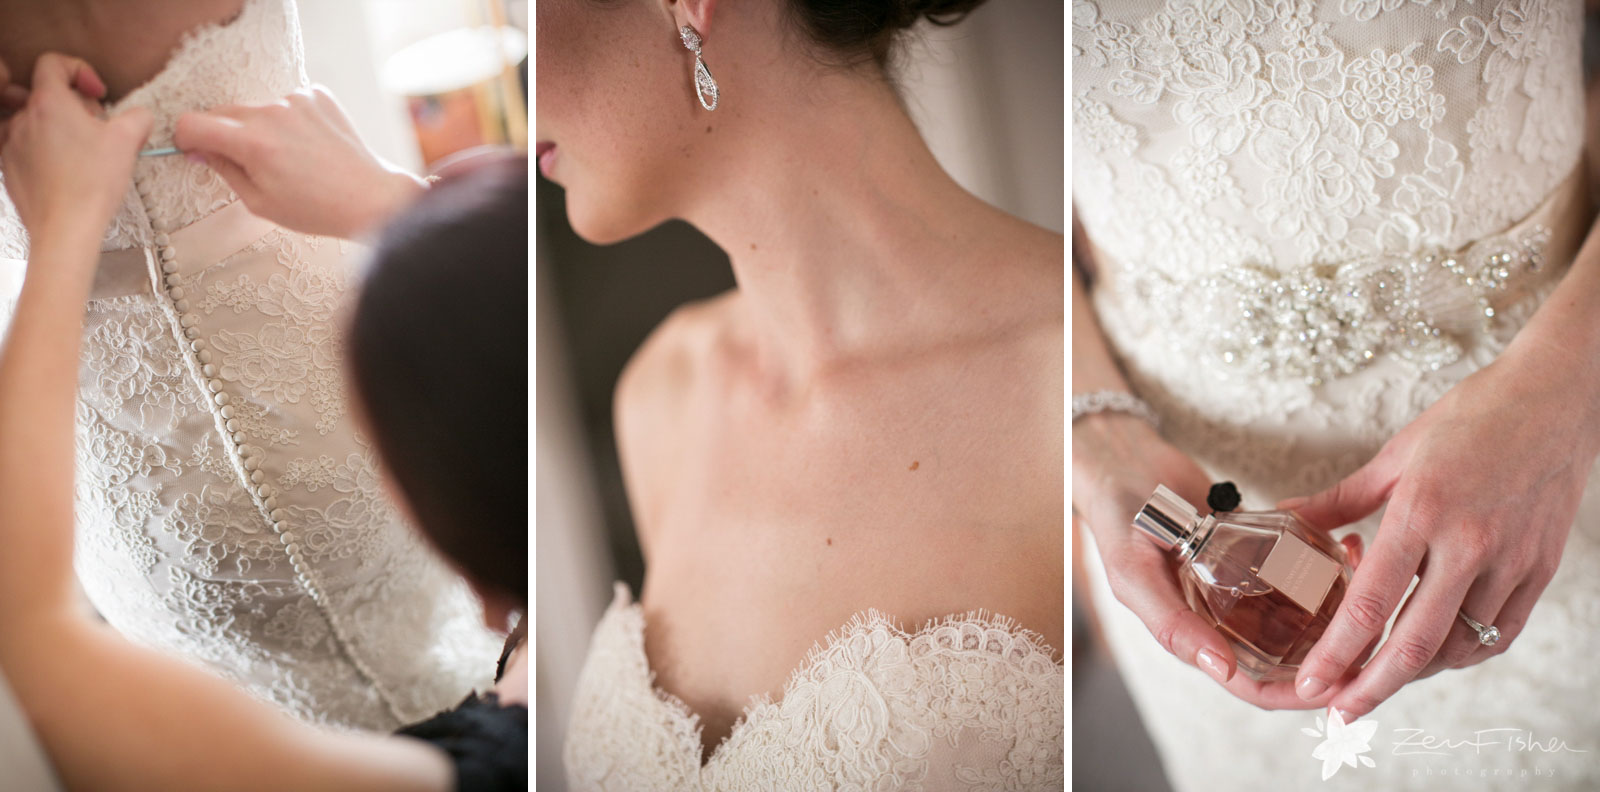 Details of the bride getting ready, the beads and lace of her dress, crystal earrings, and perfume.